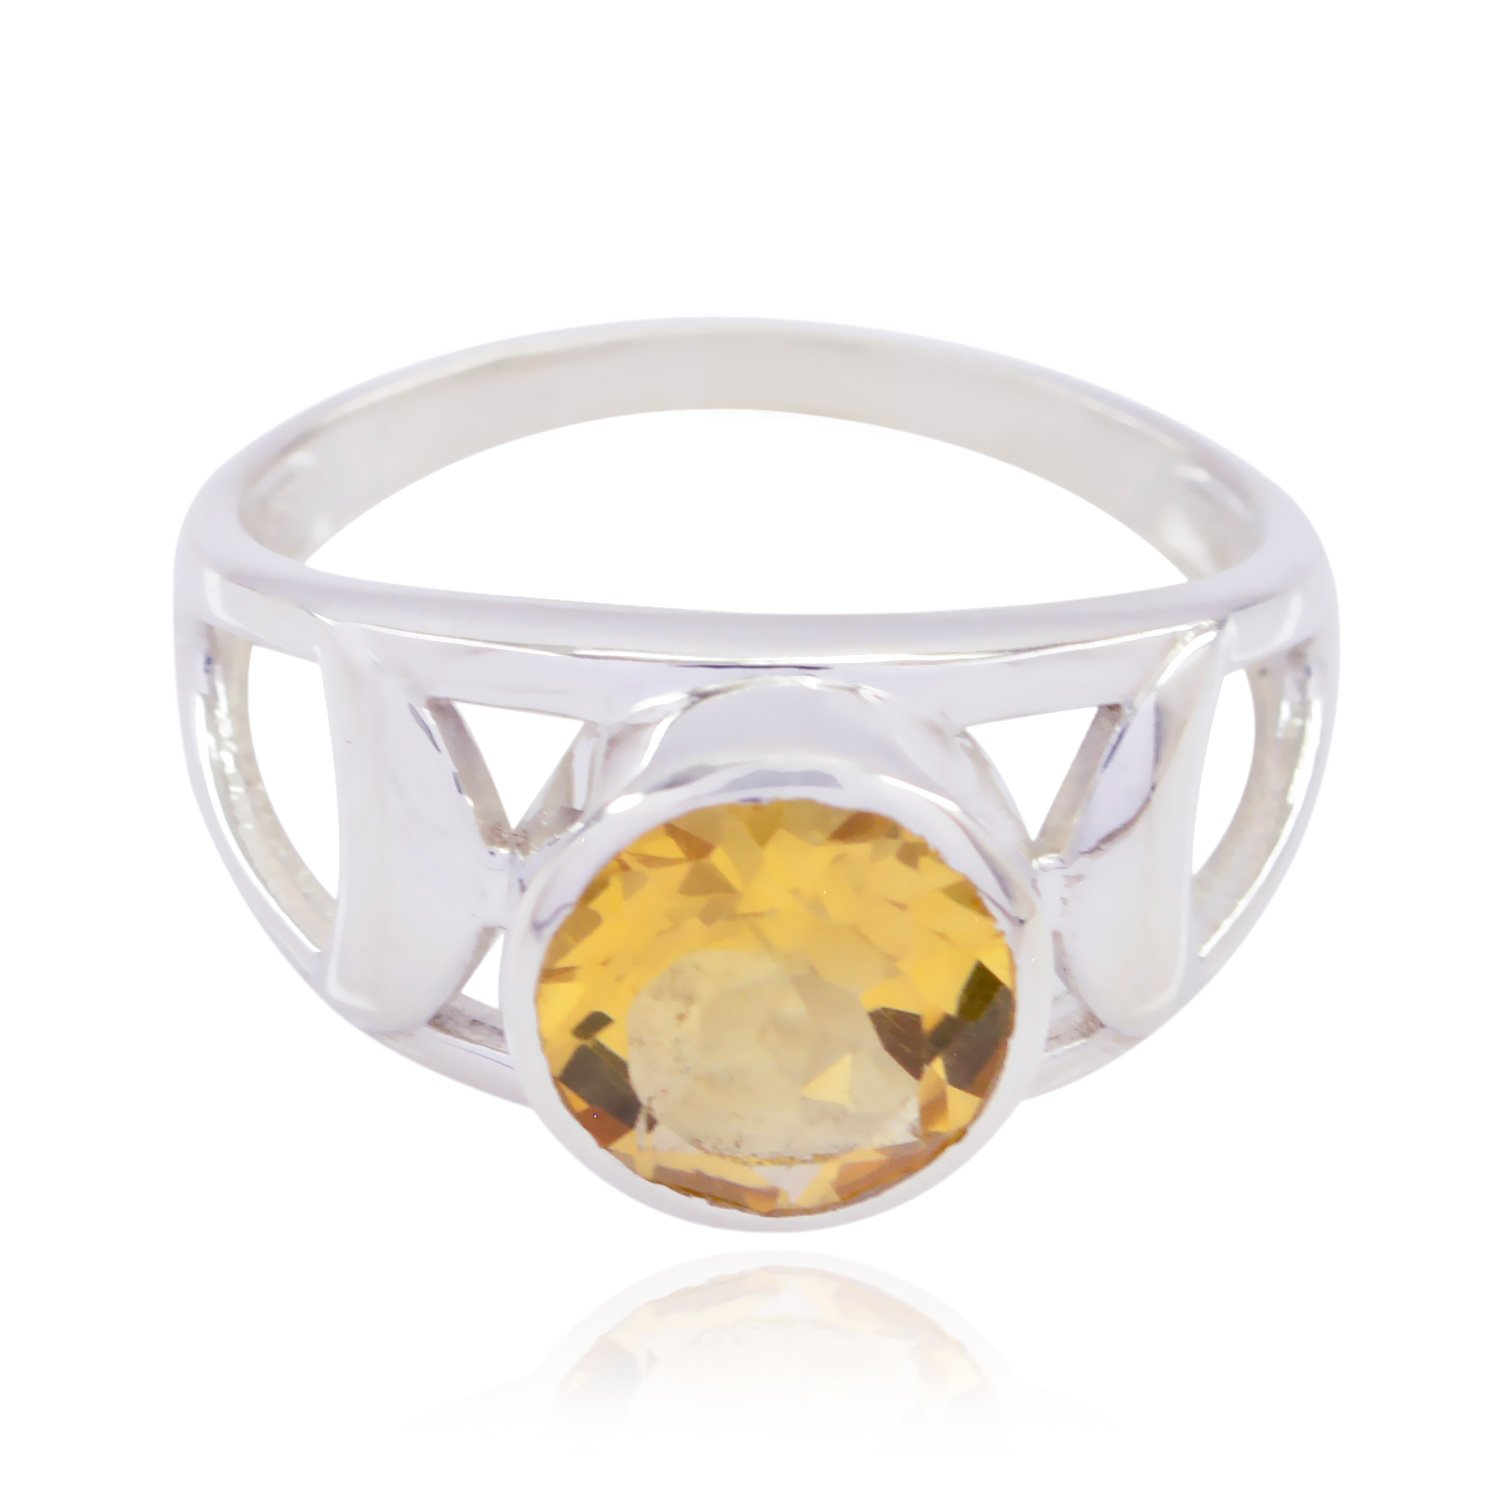 Good Gemstones Round Faceted Citrines Ring - Fashion Silber Yellow Citrines Good Gemstones Ring - Supply Jewelry top Item Gift for Graduation Monogram Stack Ring -US 7.75